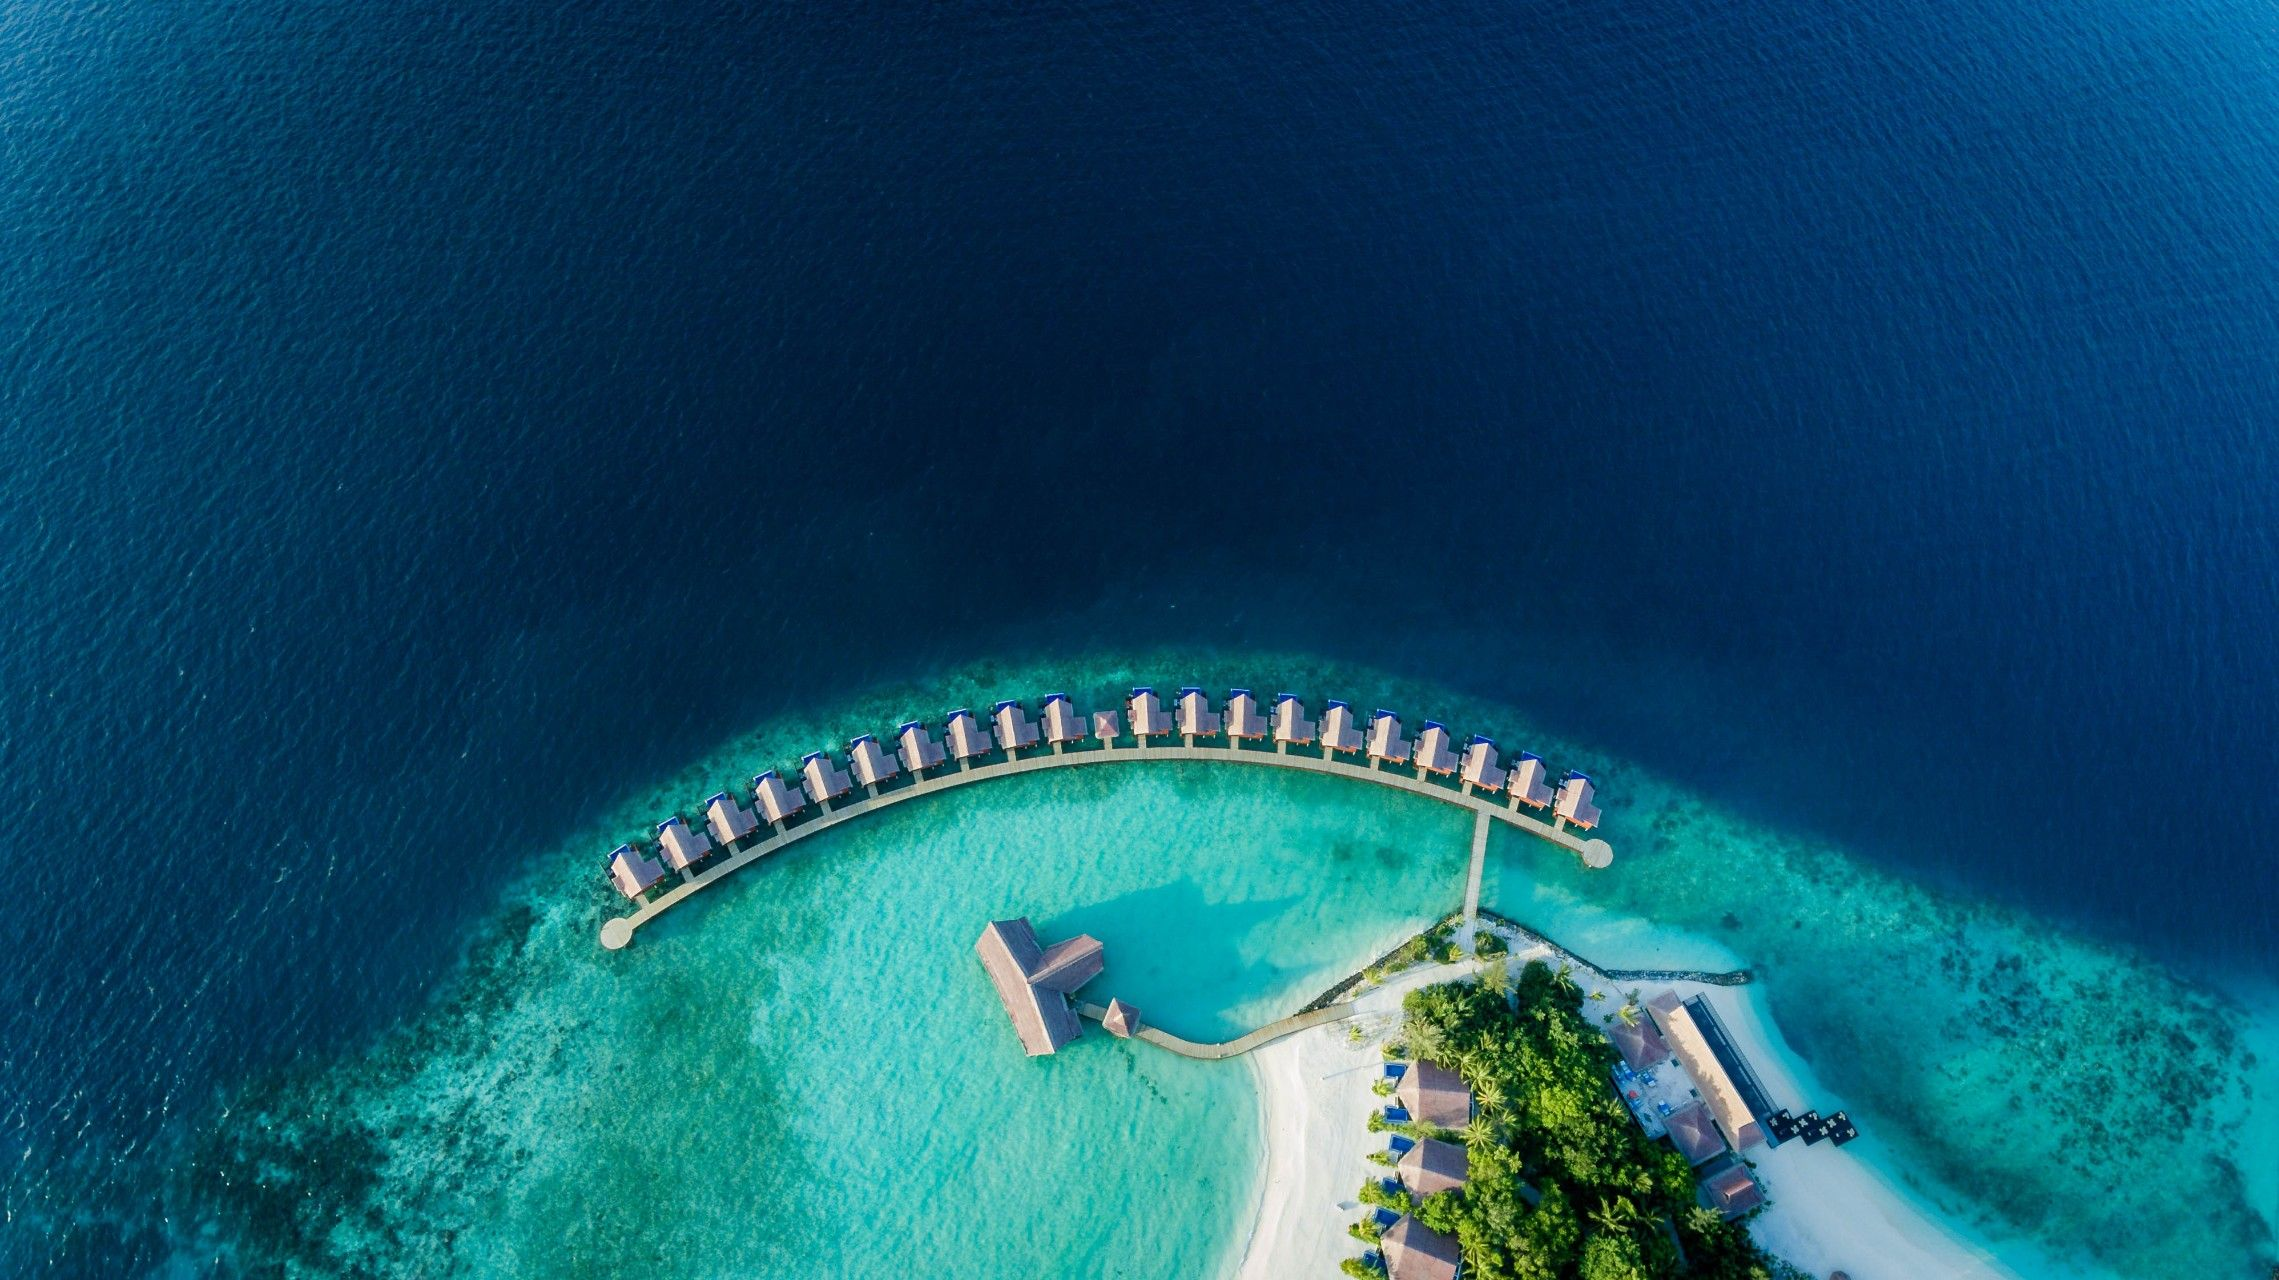 Resort aerial view of Grand Park Kodhipparu Maldives